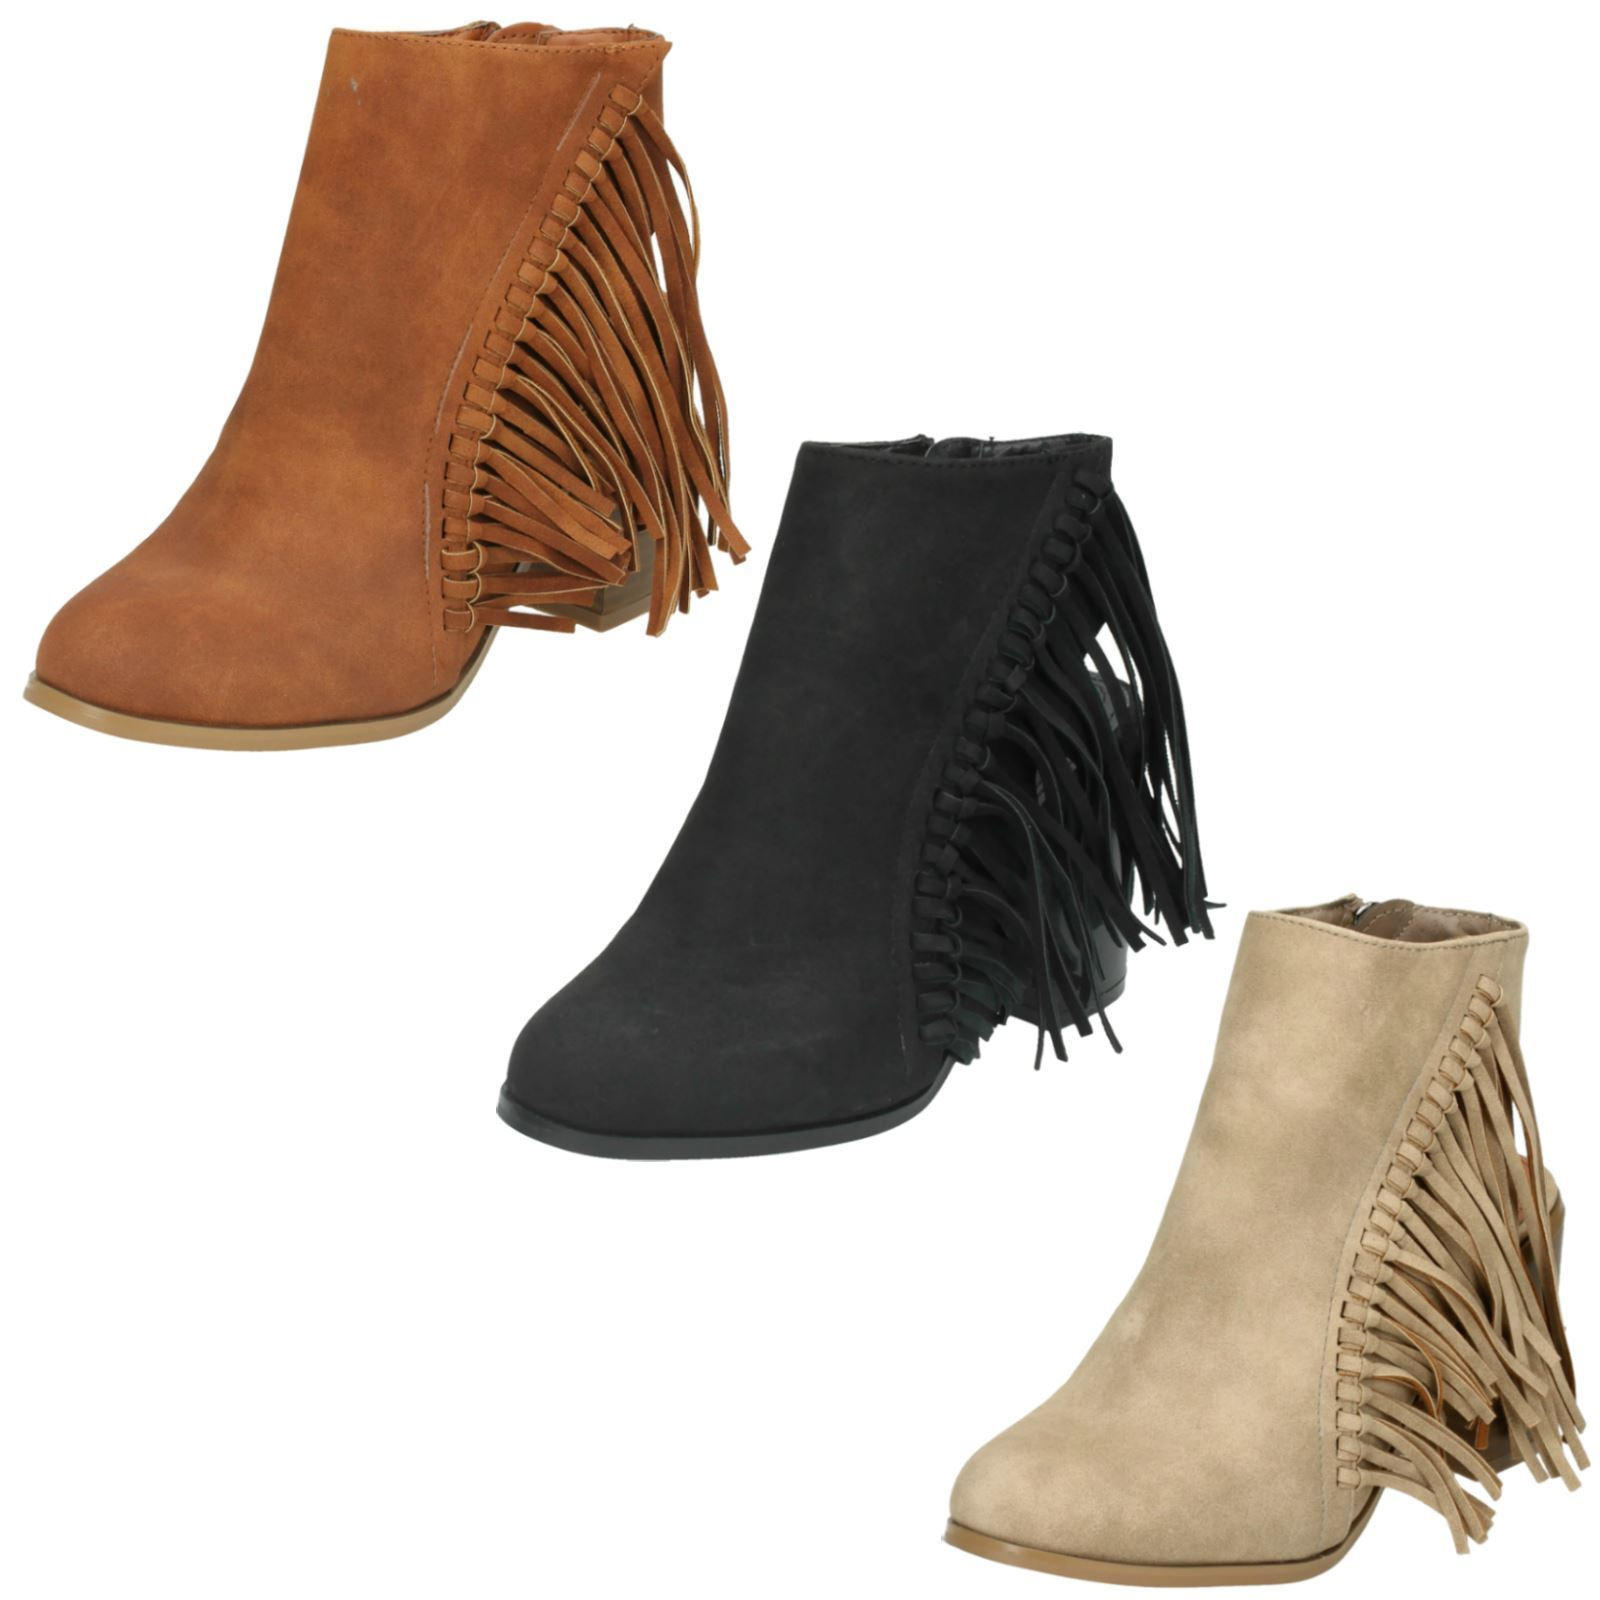 Spot On Beige Or Tan Zip Up Fringed Ankle Boots F50489 Black